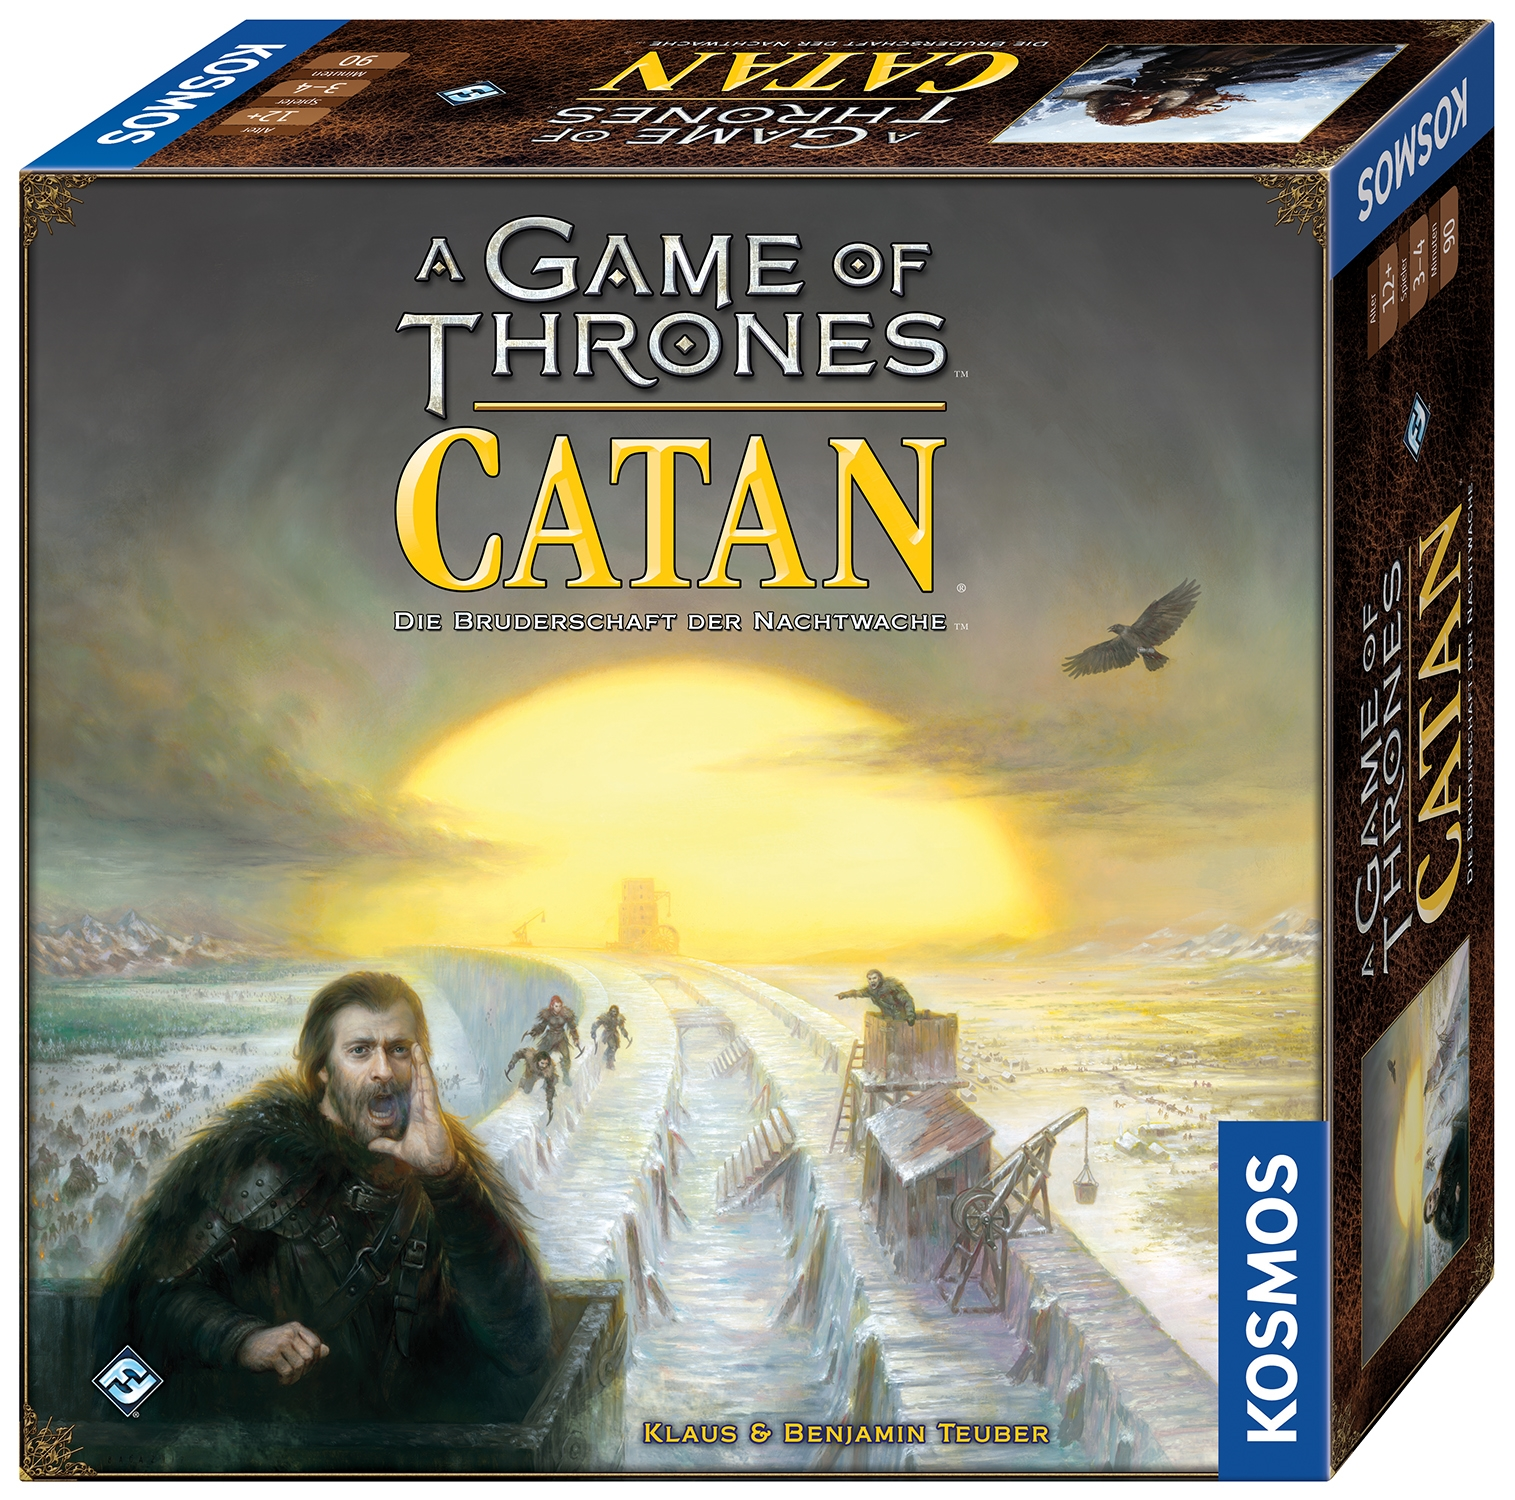 Kosmos kündigt A Game of Thrones CATAN für Oktober 2017 an